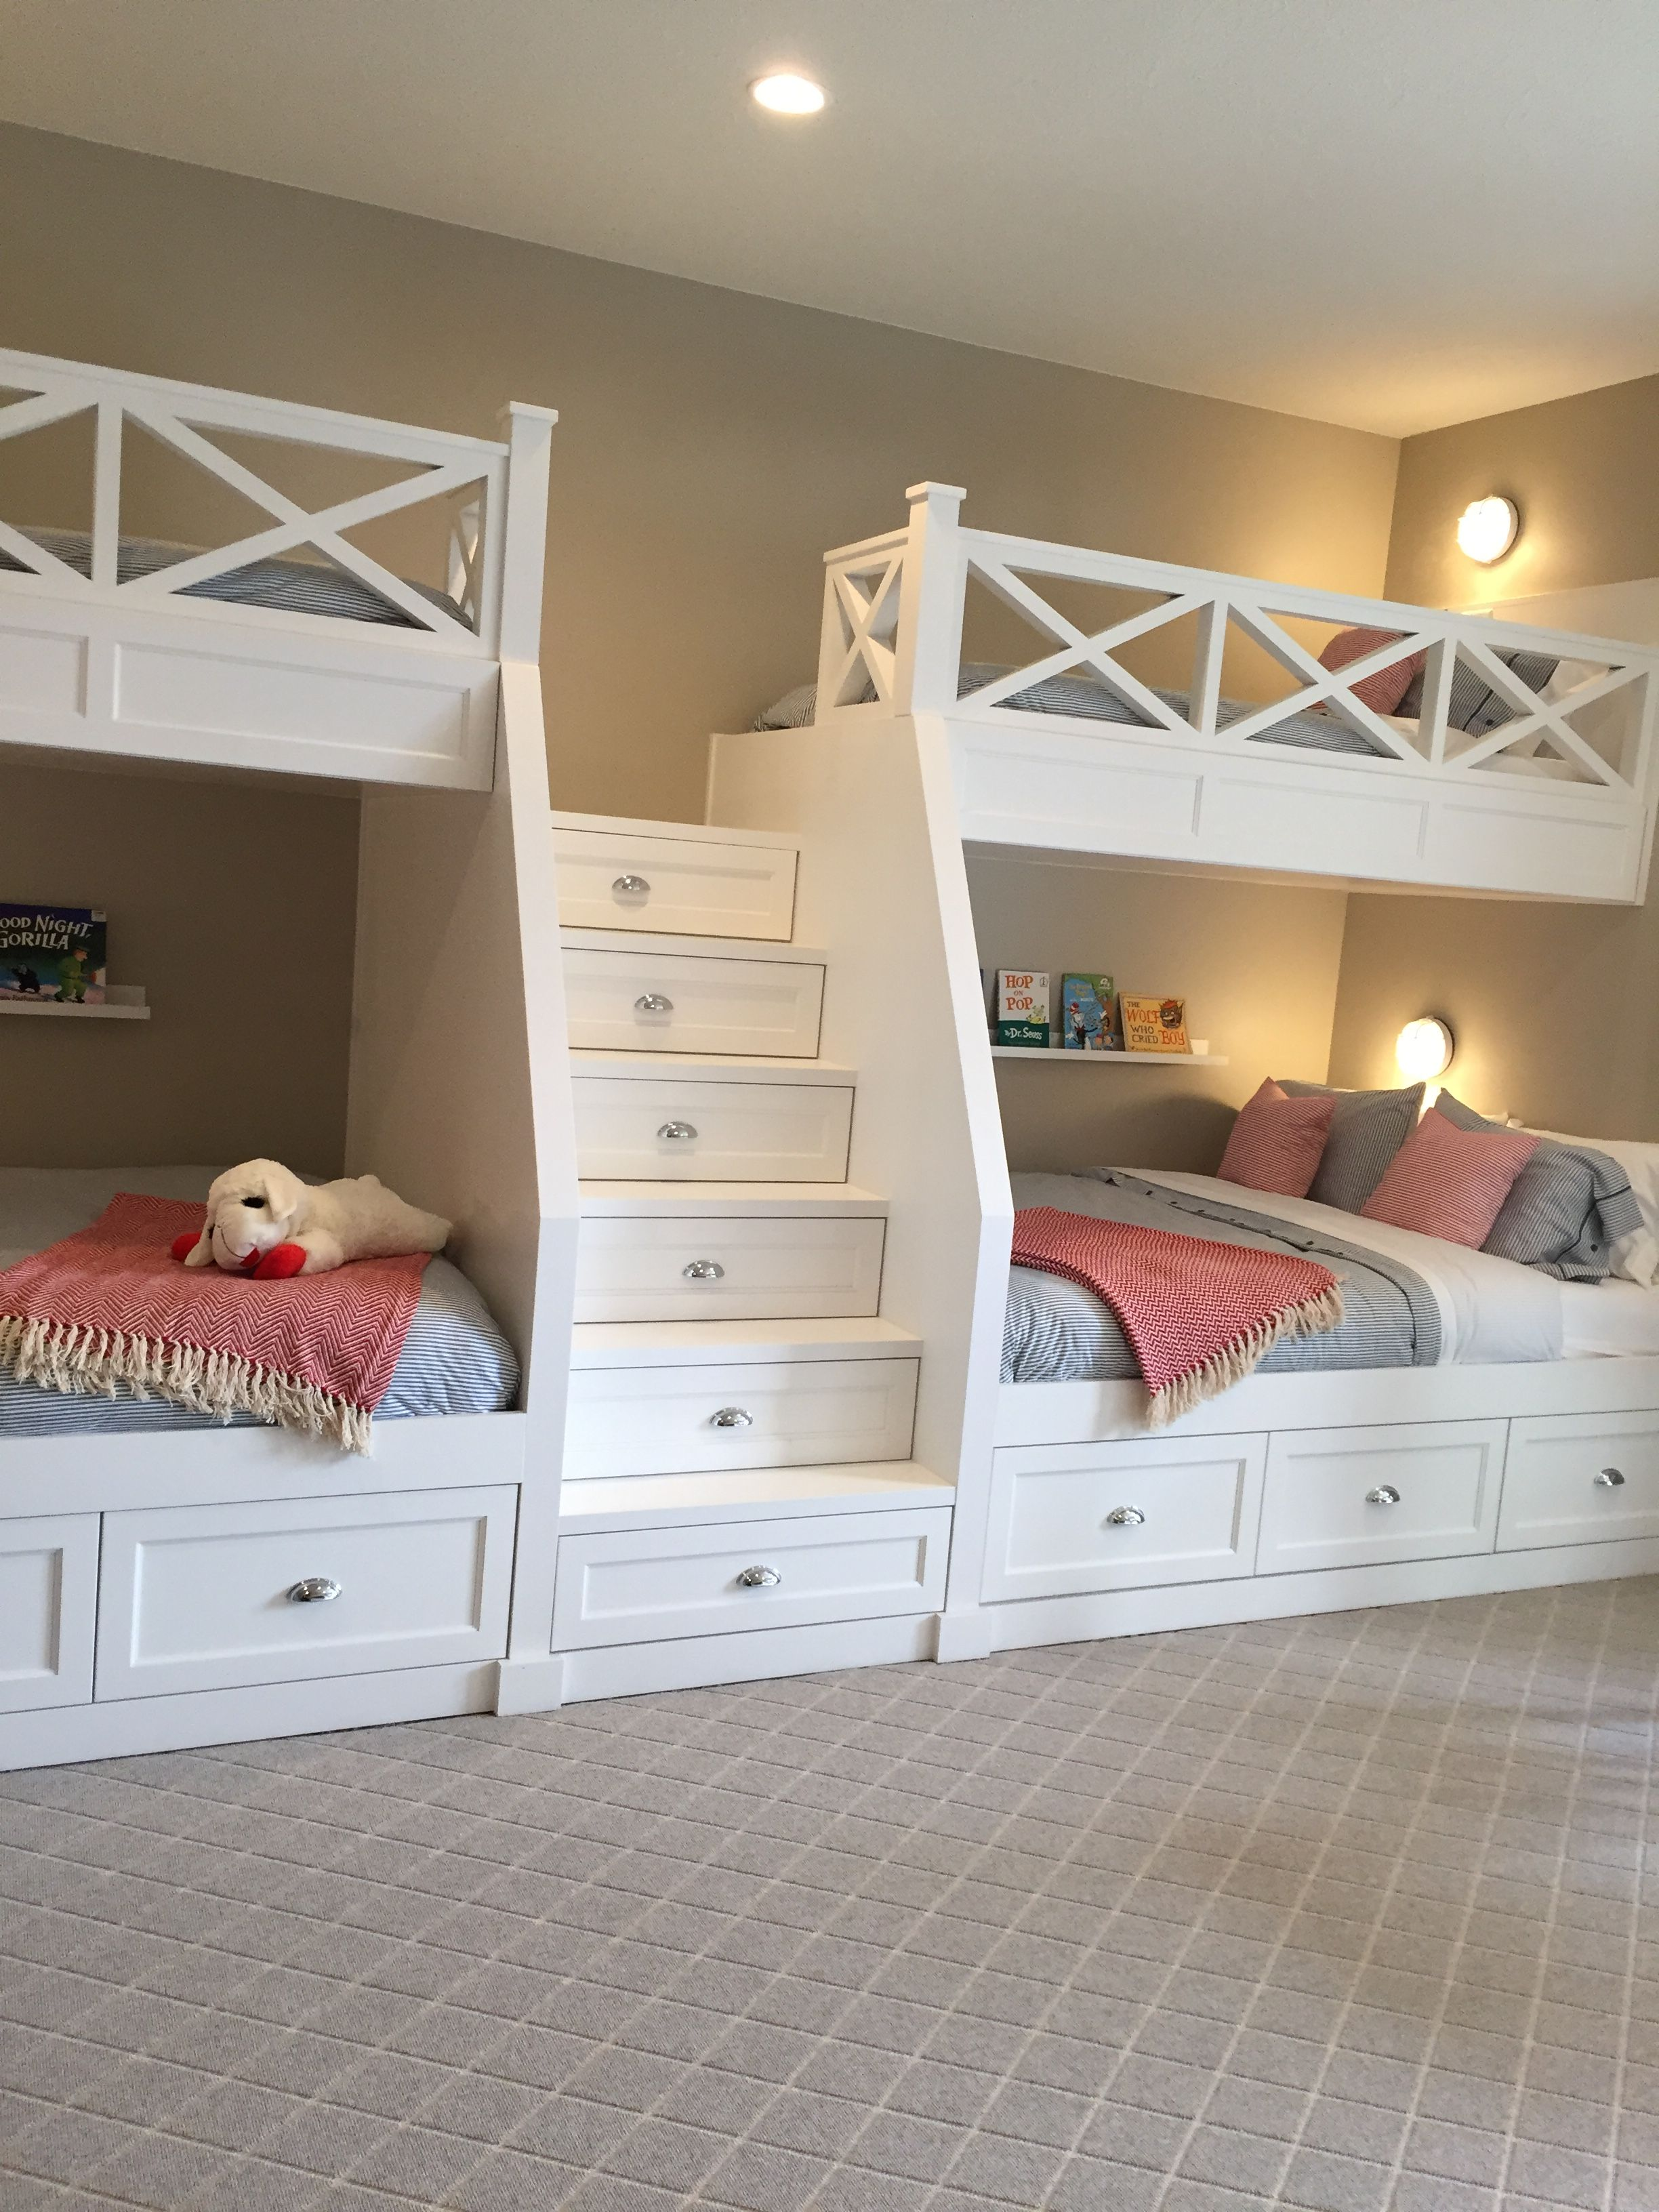 House 4 Bed for girls room, Bedroom furnishings, Bunk